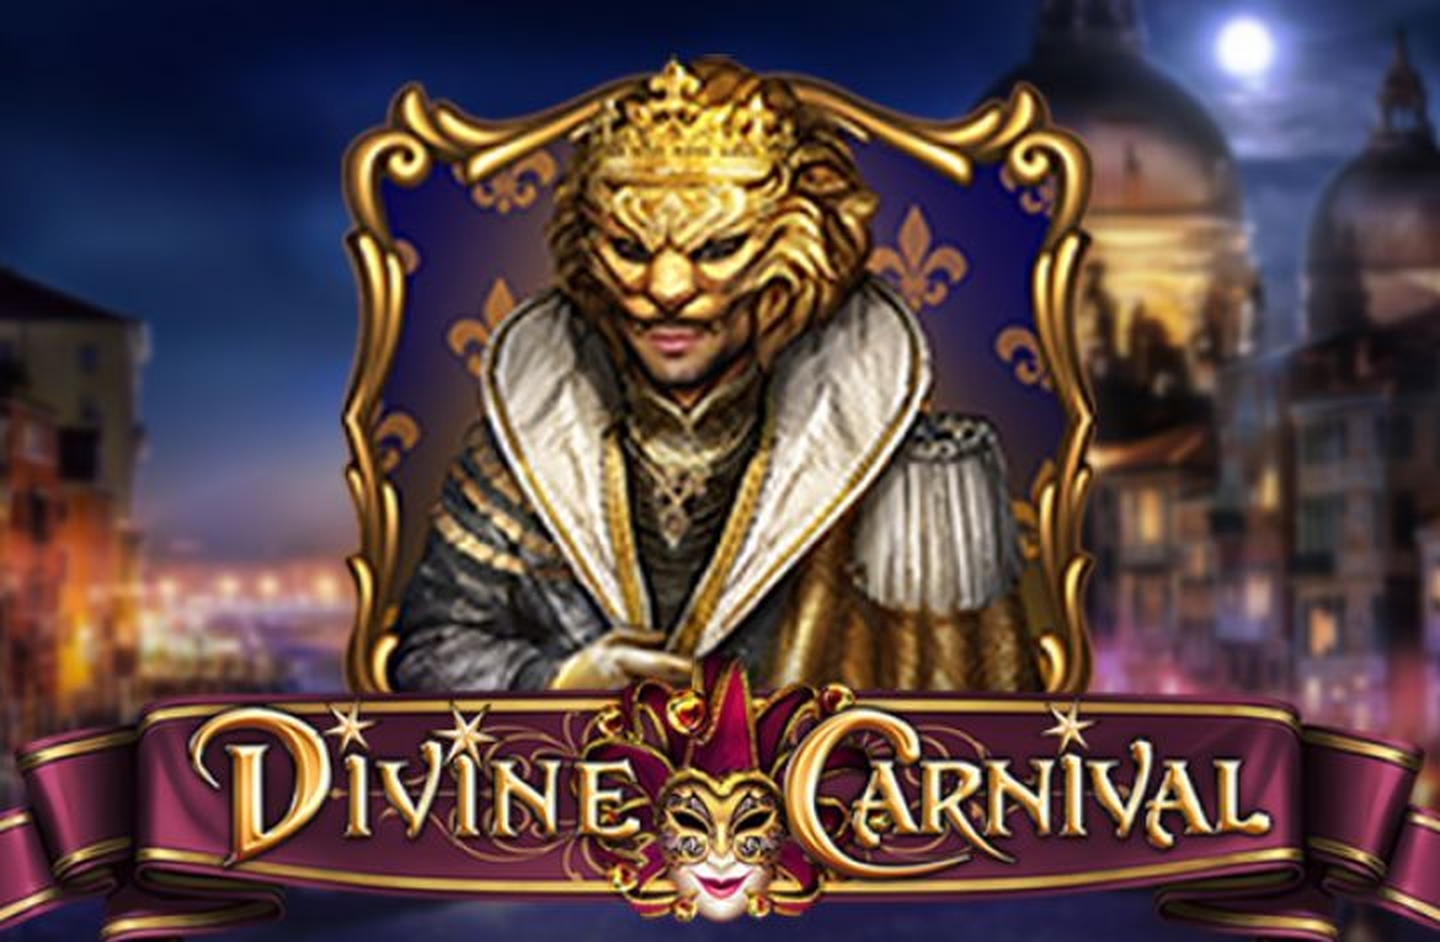 The Divine Carnival Online Slot Demo Game by Fugaso